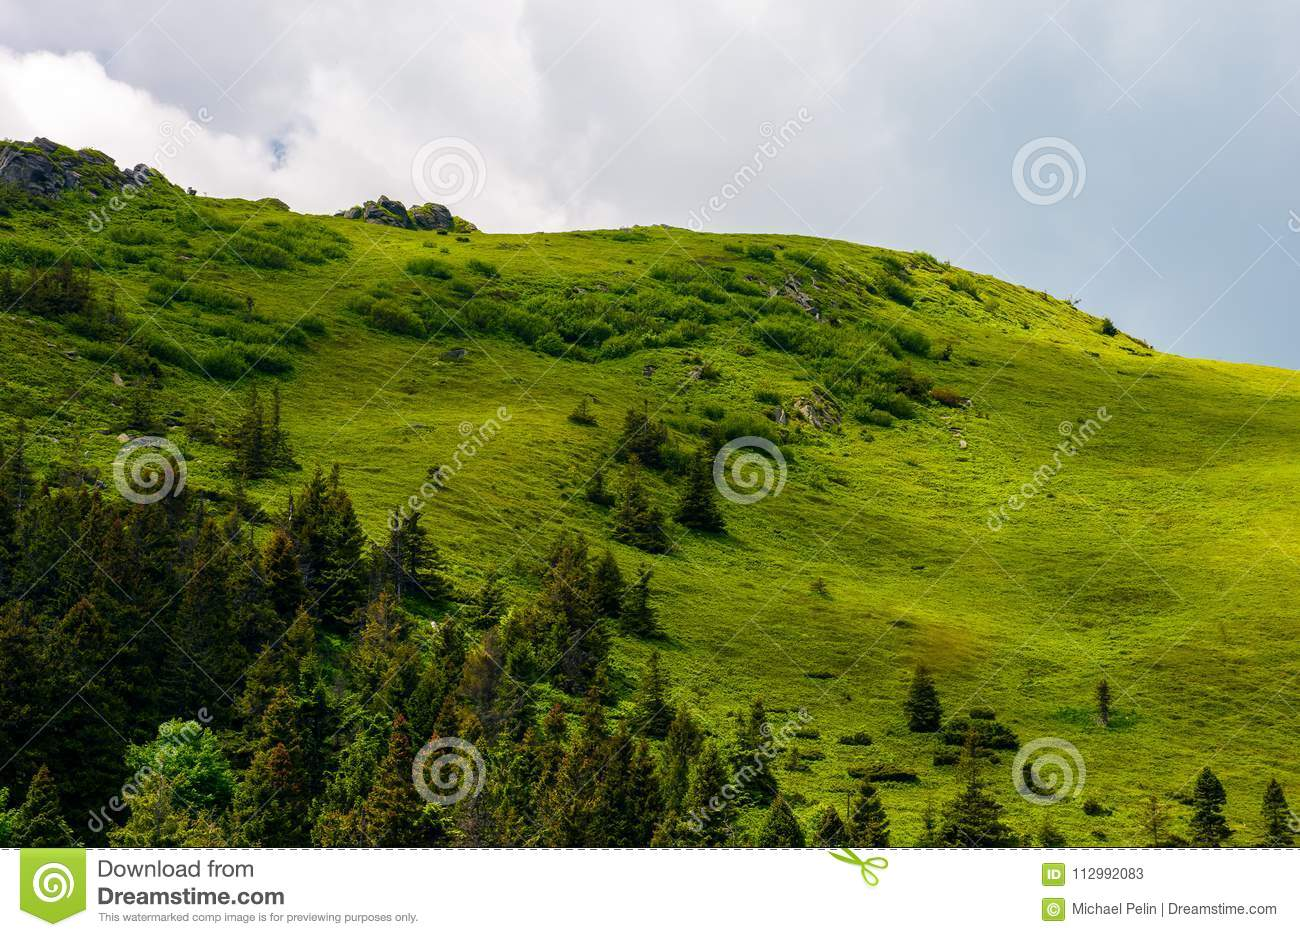 Grassy hillside with spruce forest